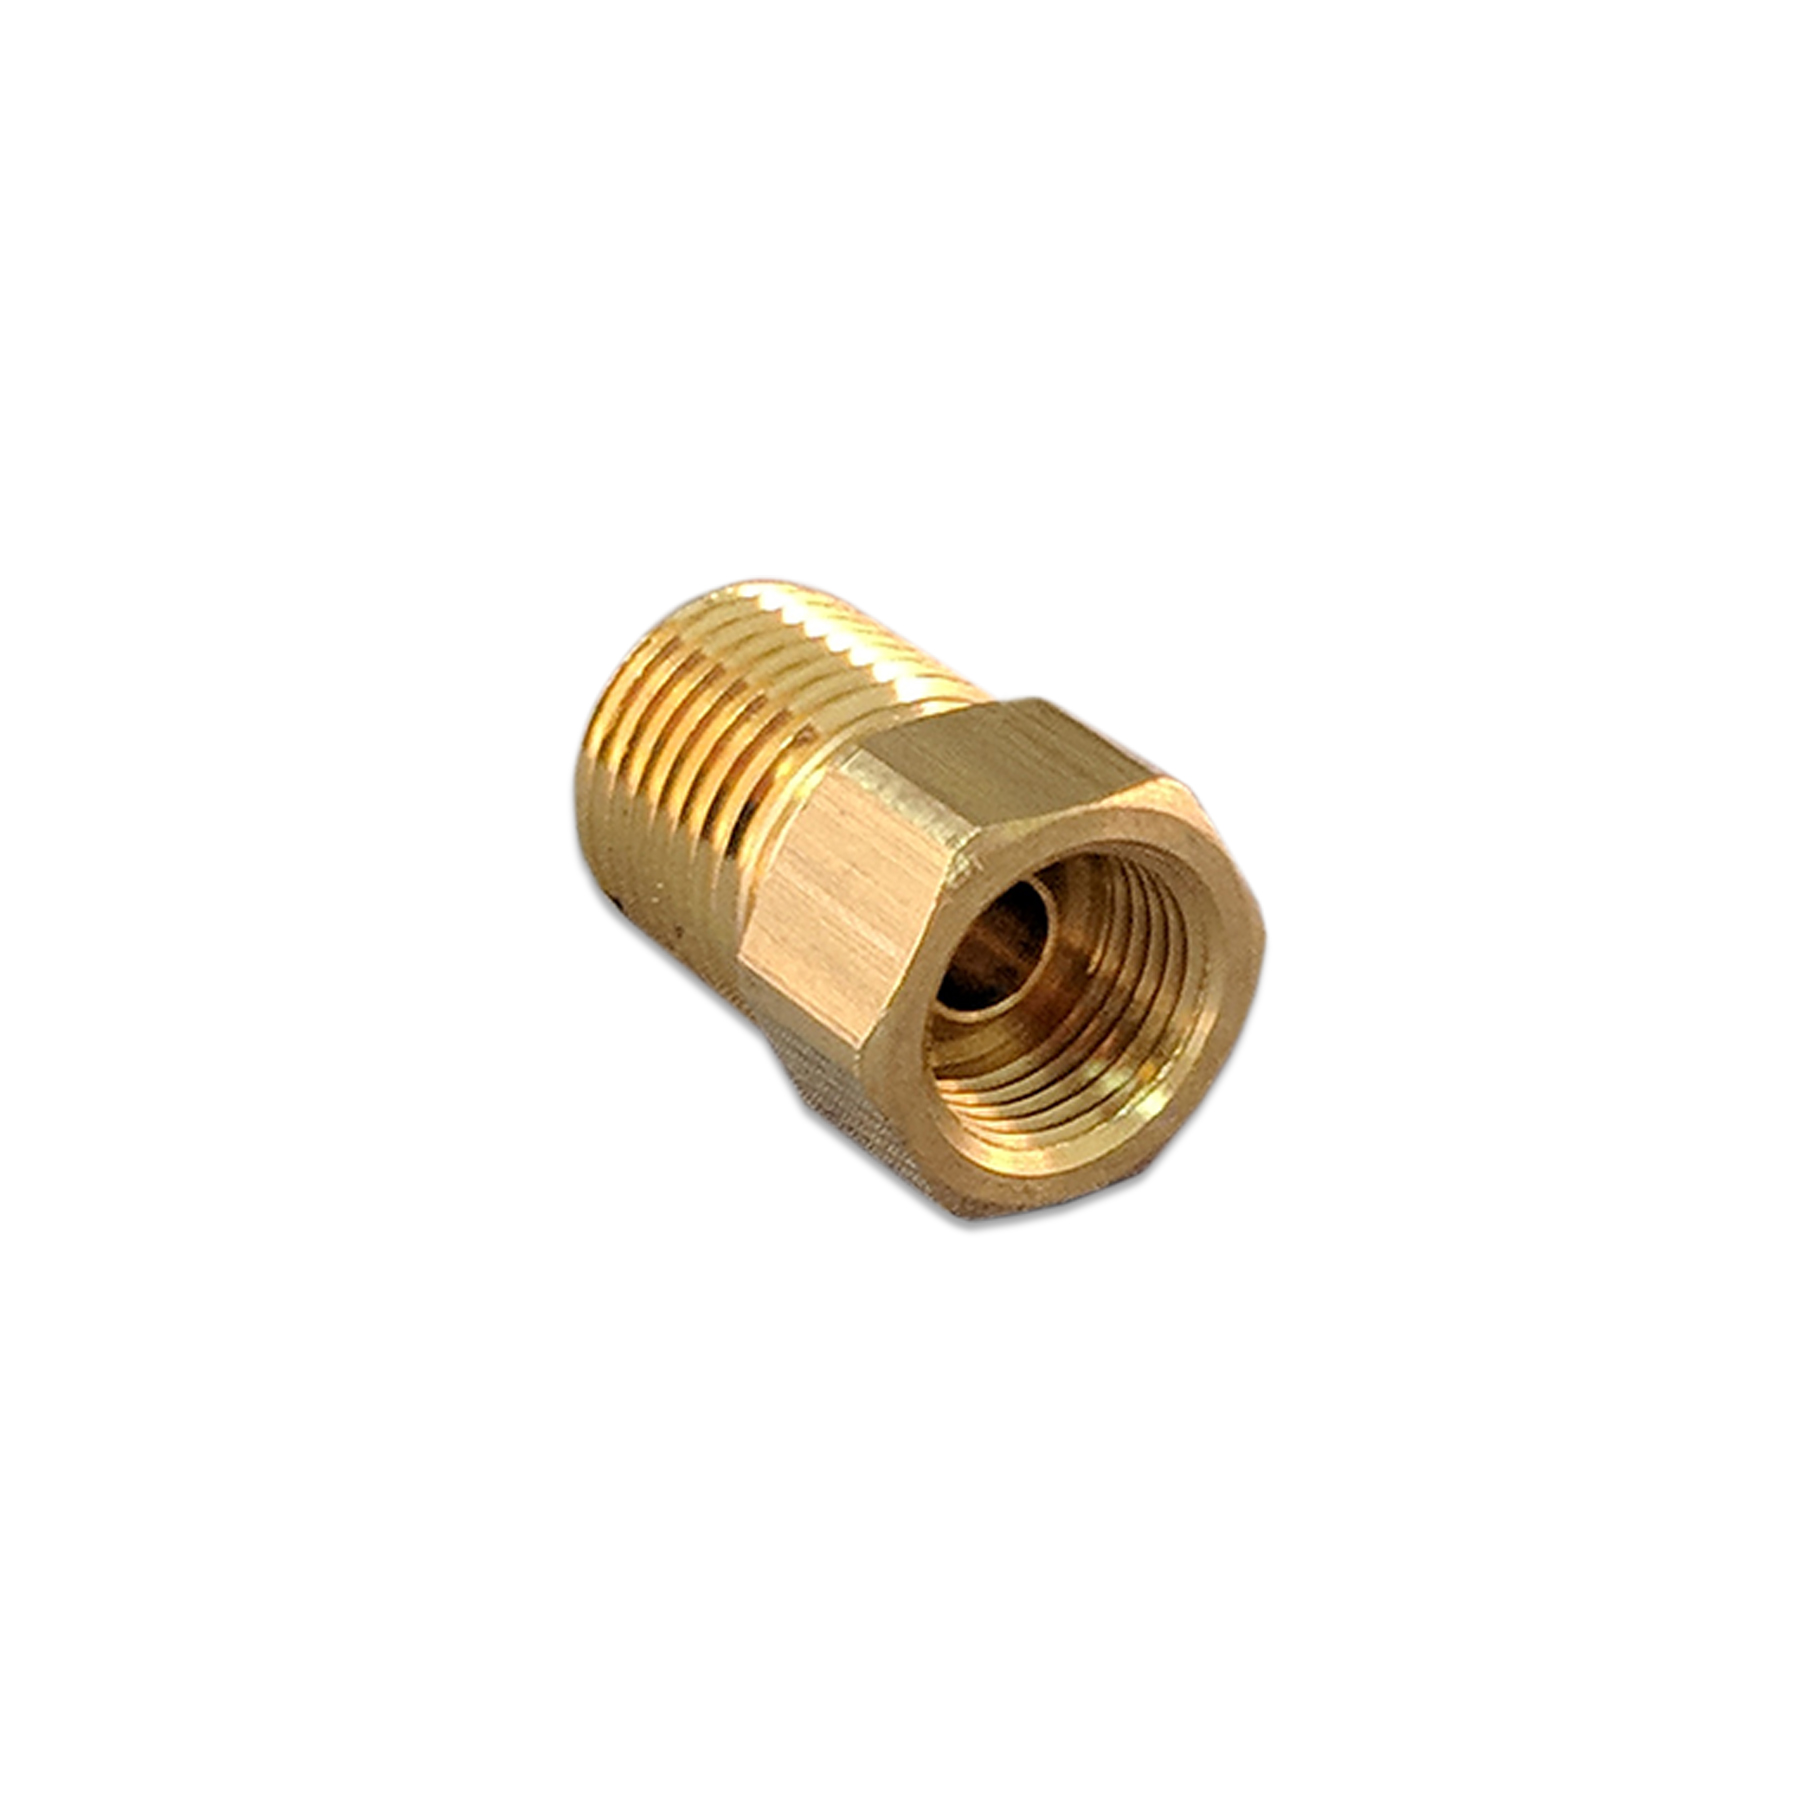 CONS Inverted Flare Connector Fitting, 1/4 Tube x 1/4 (M) NPT